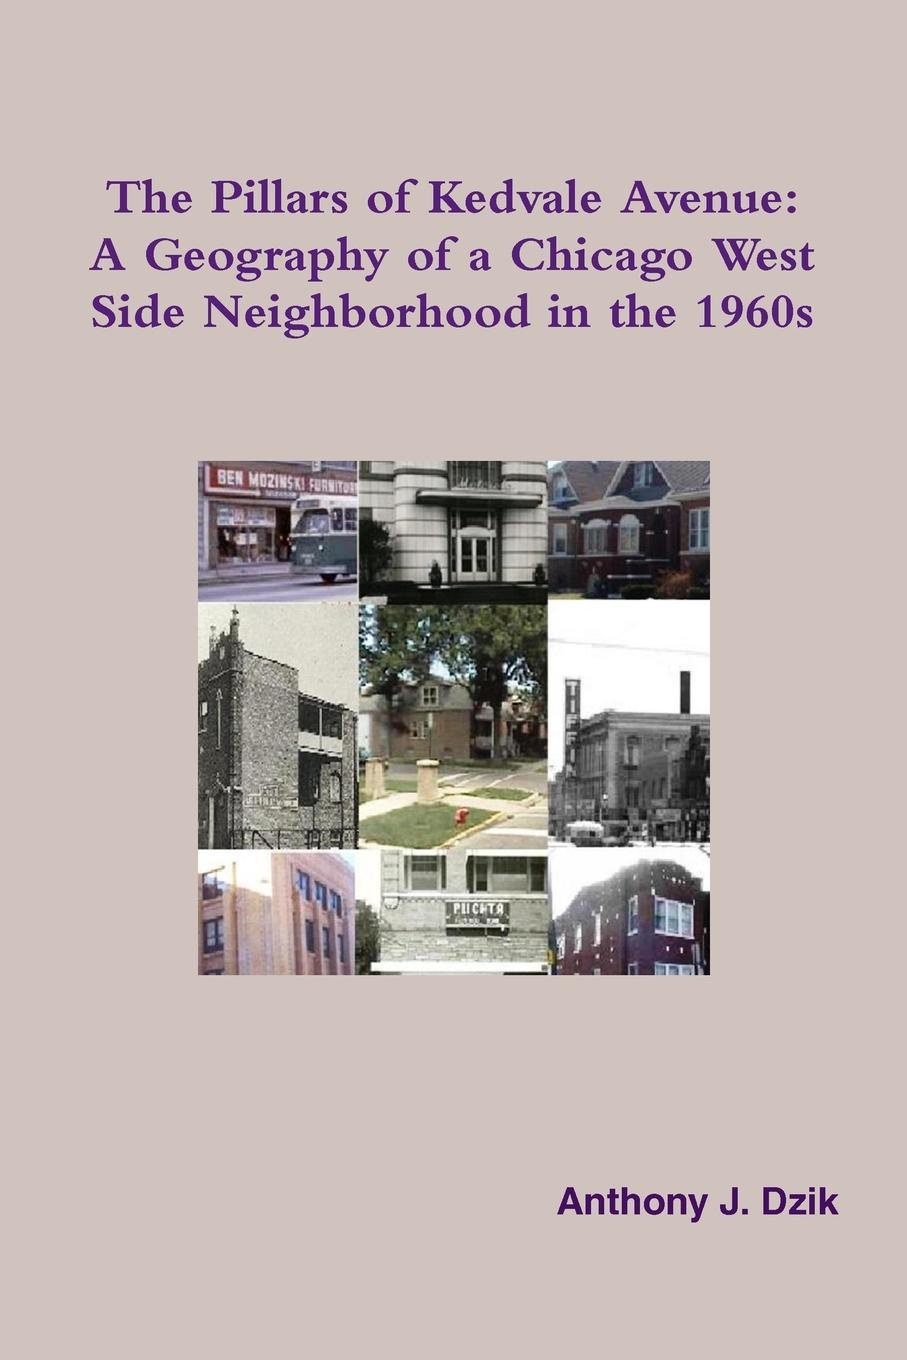 Anthony Dzik The Pillars of Kedvale Avenue. A Geography of a Chicago West Side Neighborhood in the 1960s недорго, оригинальная цена